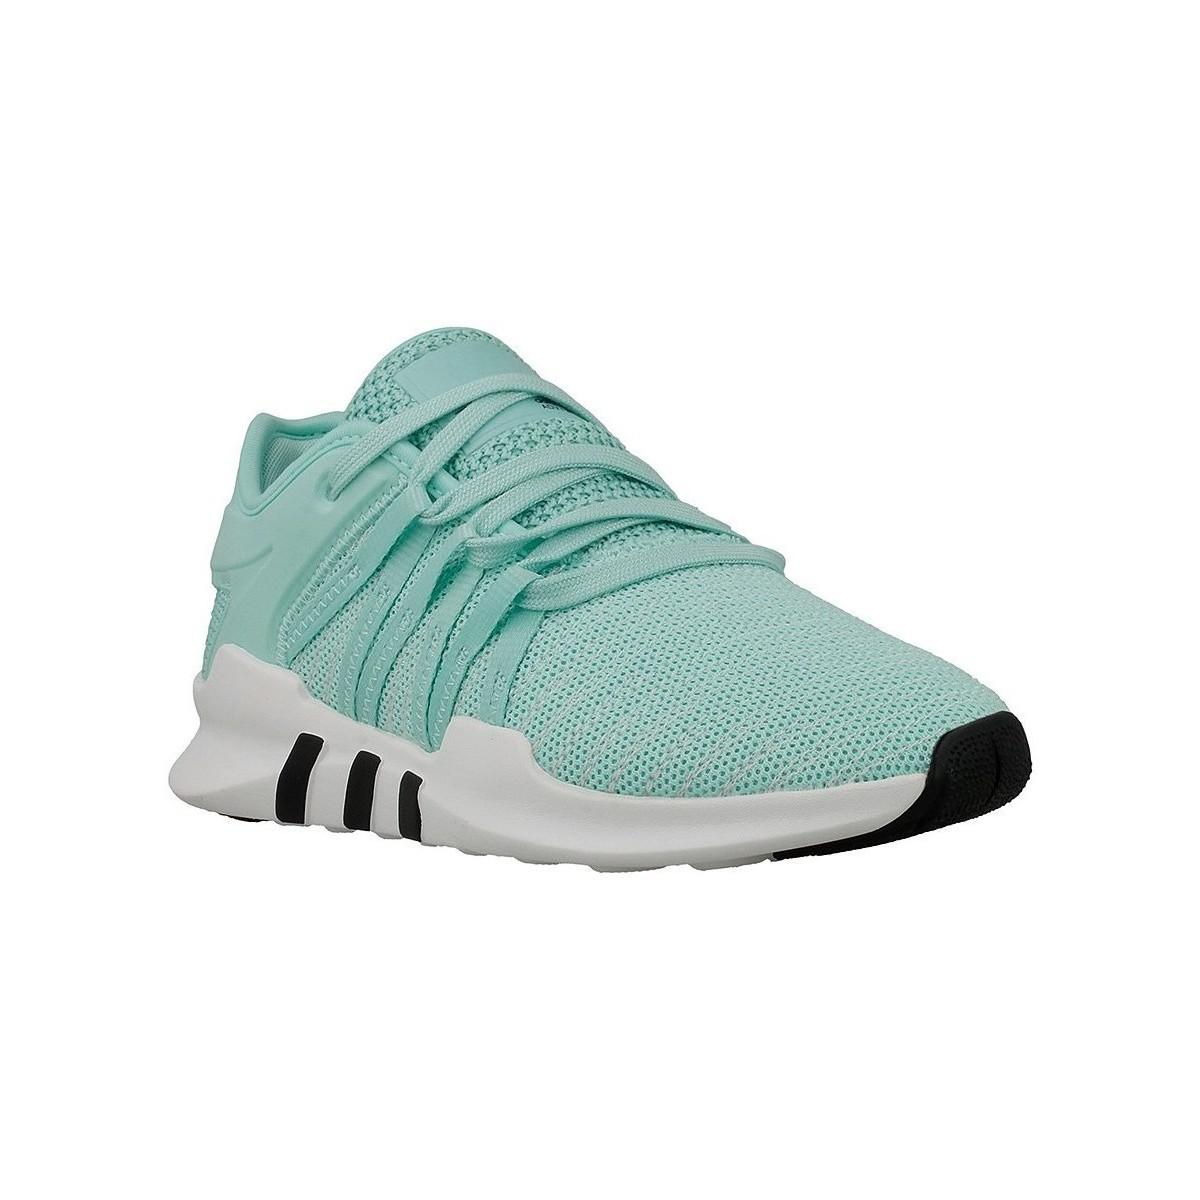 best service bf1e1 cef27 Adidas Eqt Racing Adv W Women s Shoes (trainers) In Blue in Blue - Lyst